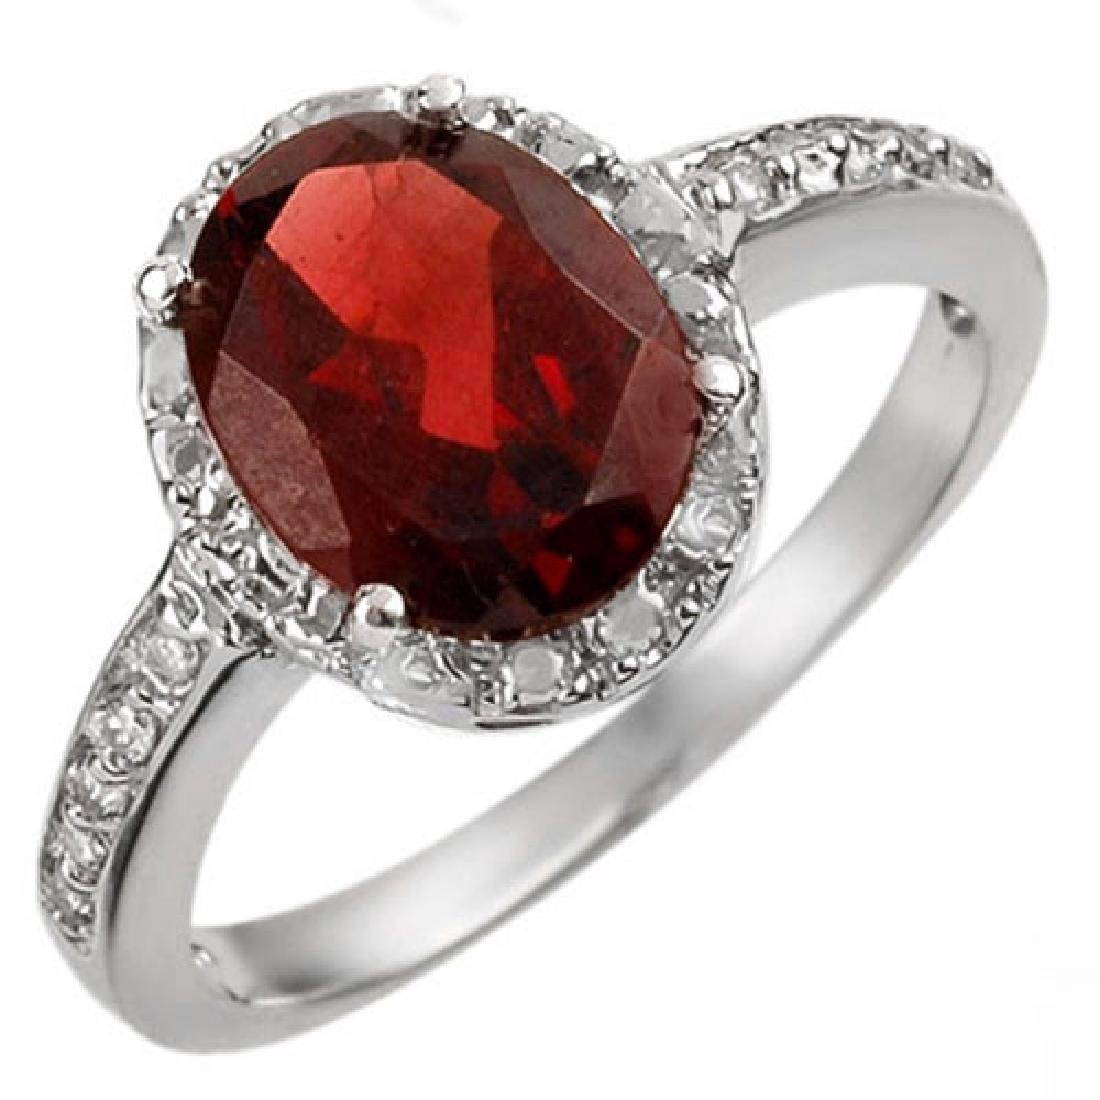 2.10 CTW Garnet & Diamond Ring 10K White Gold - 2